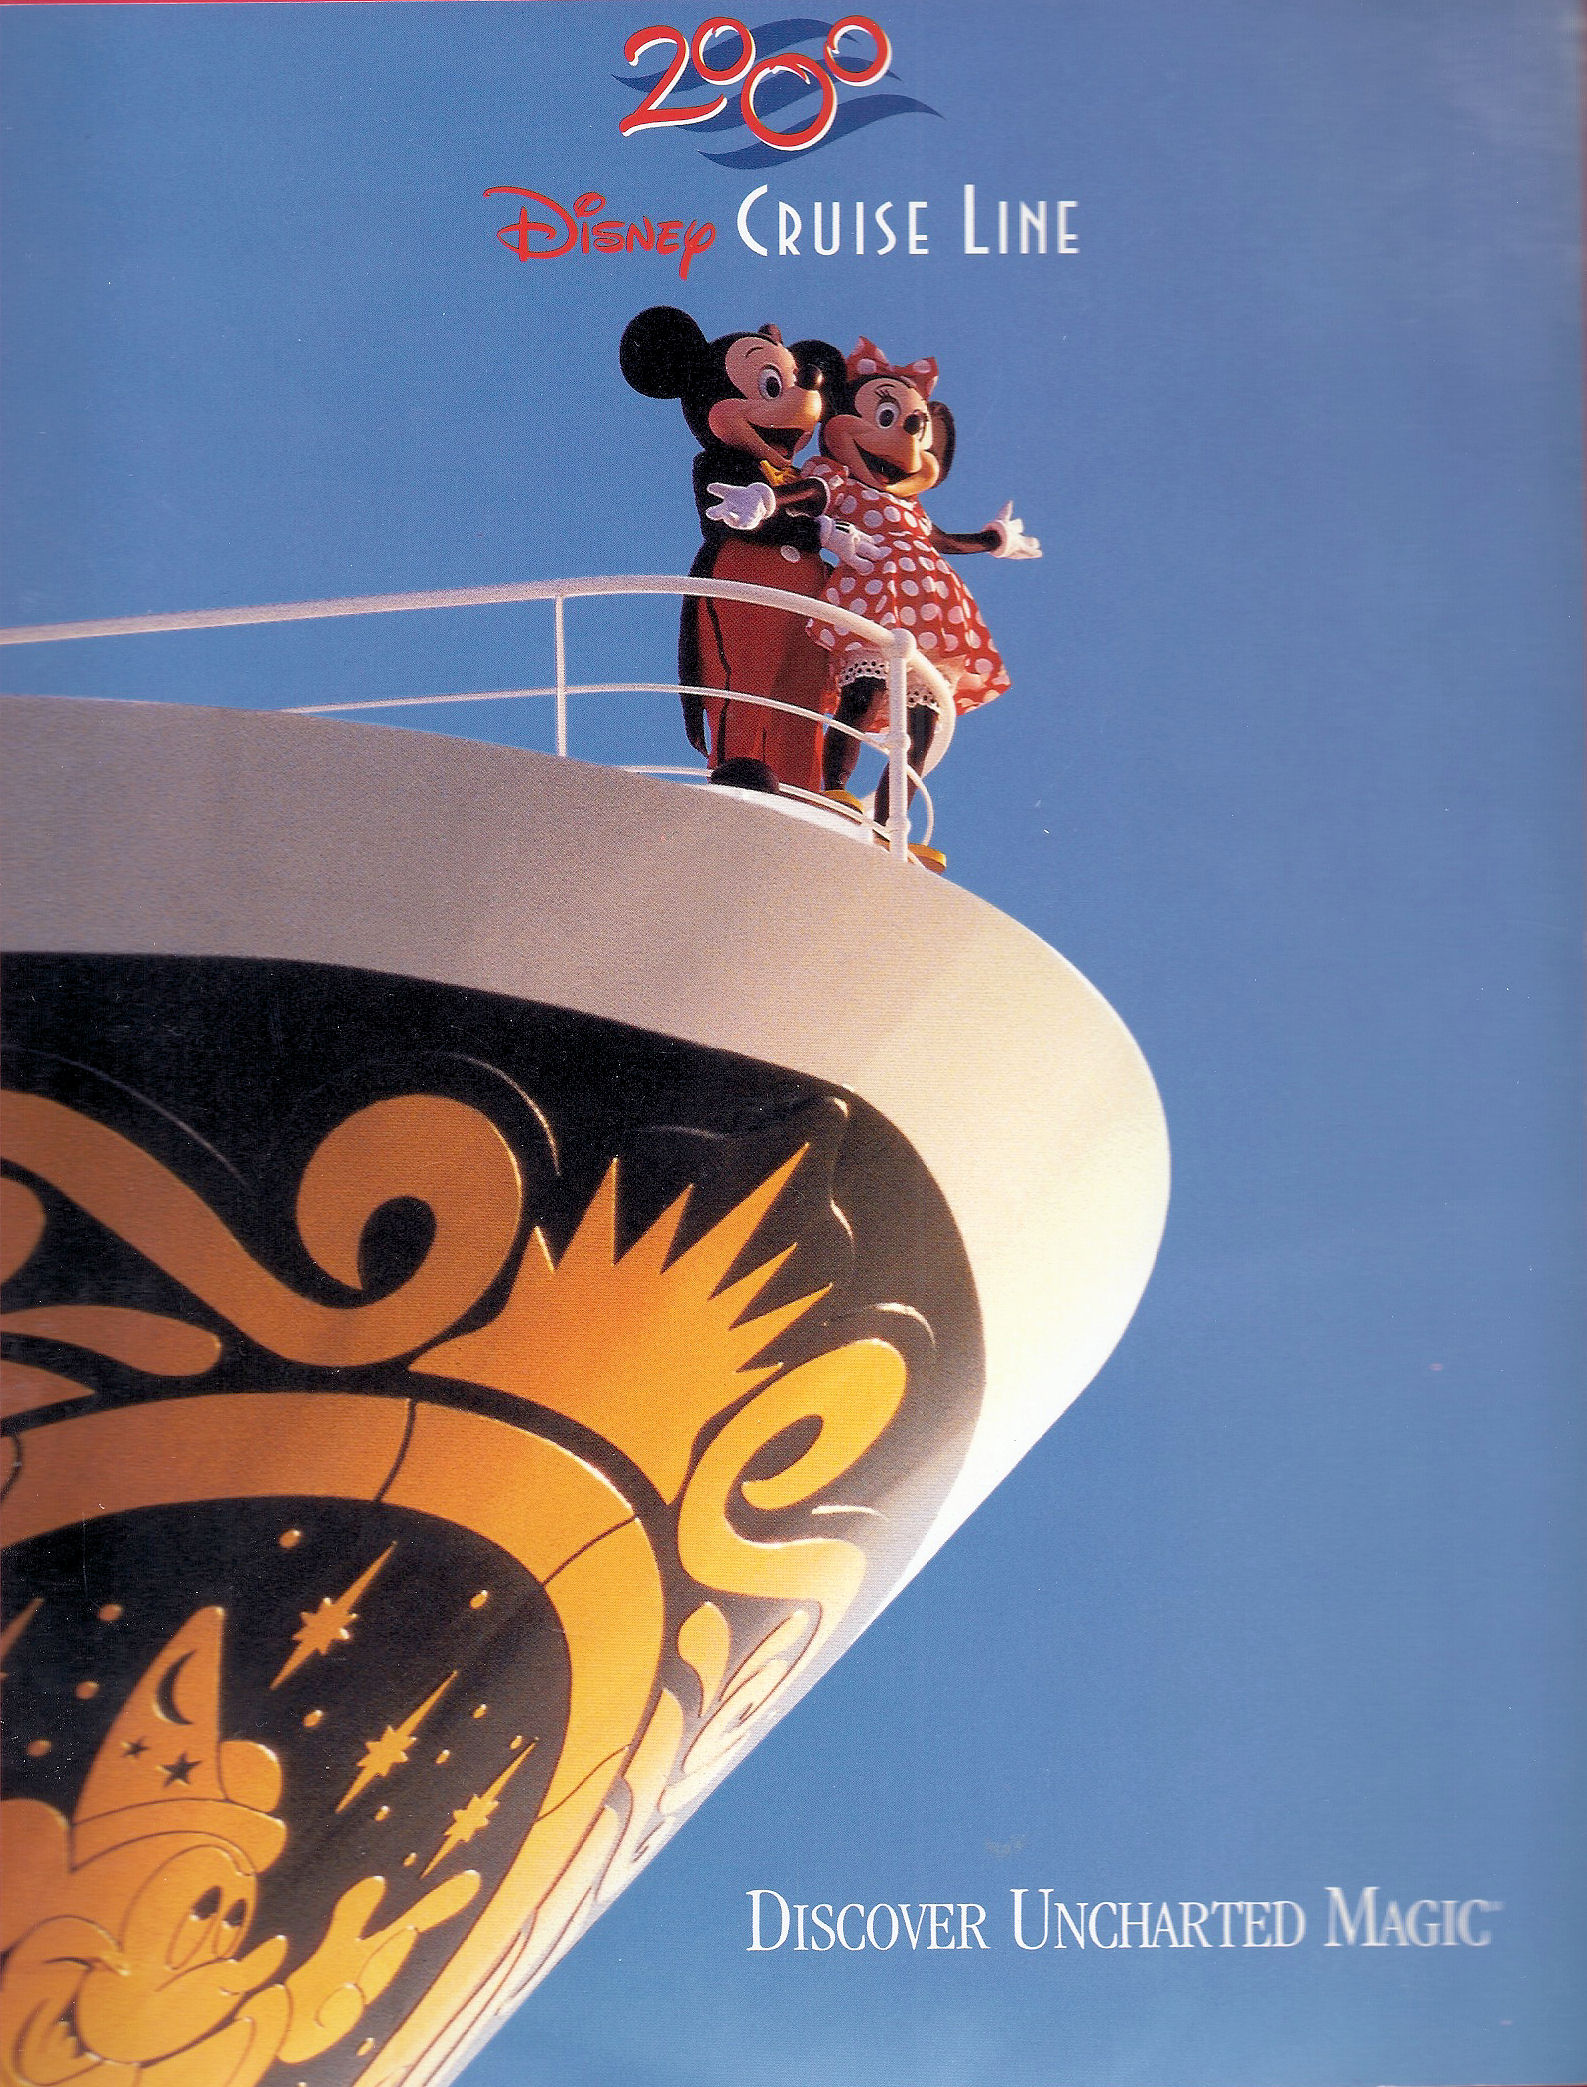 An ad for the Disney Cruise Line.